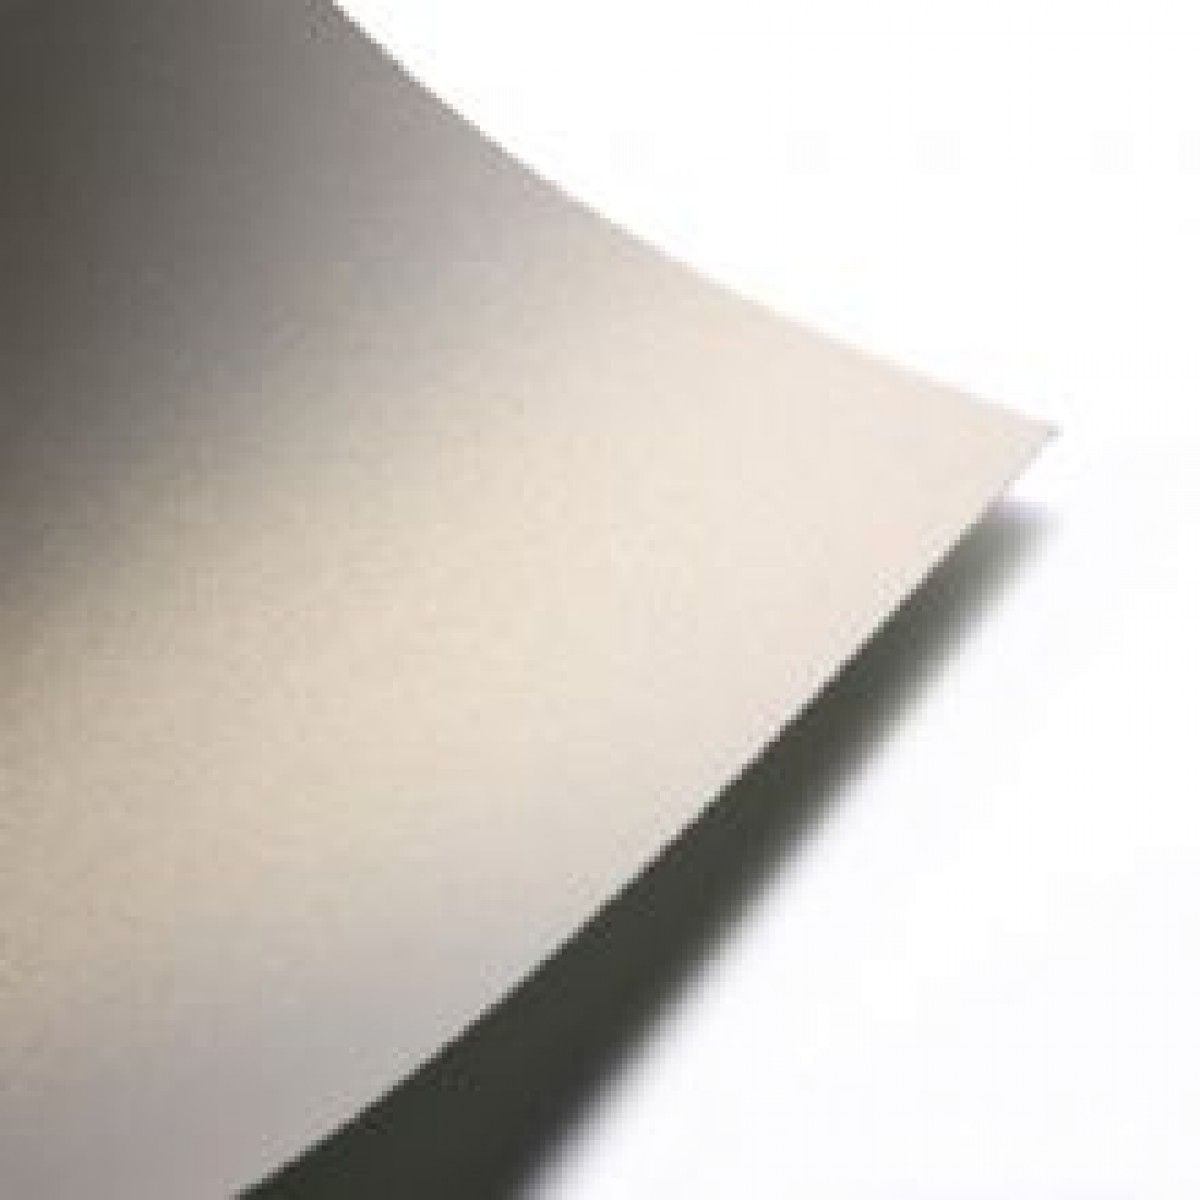 100 A4 Sheets Pearlescent Paper White Cardmaking Ivory Cream 120gsm Wedding